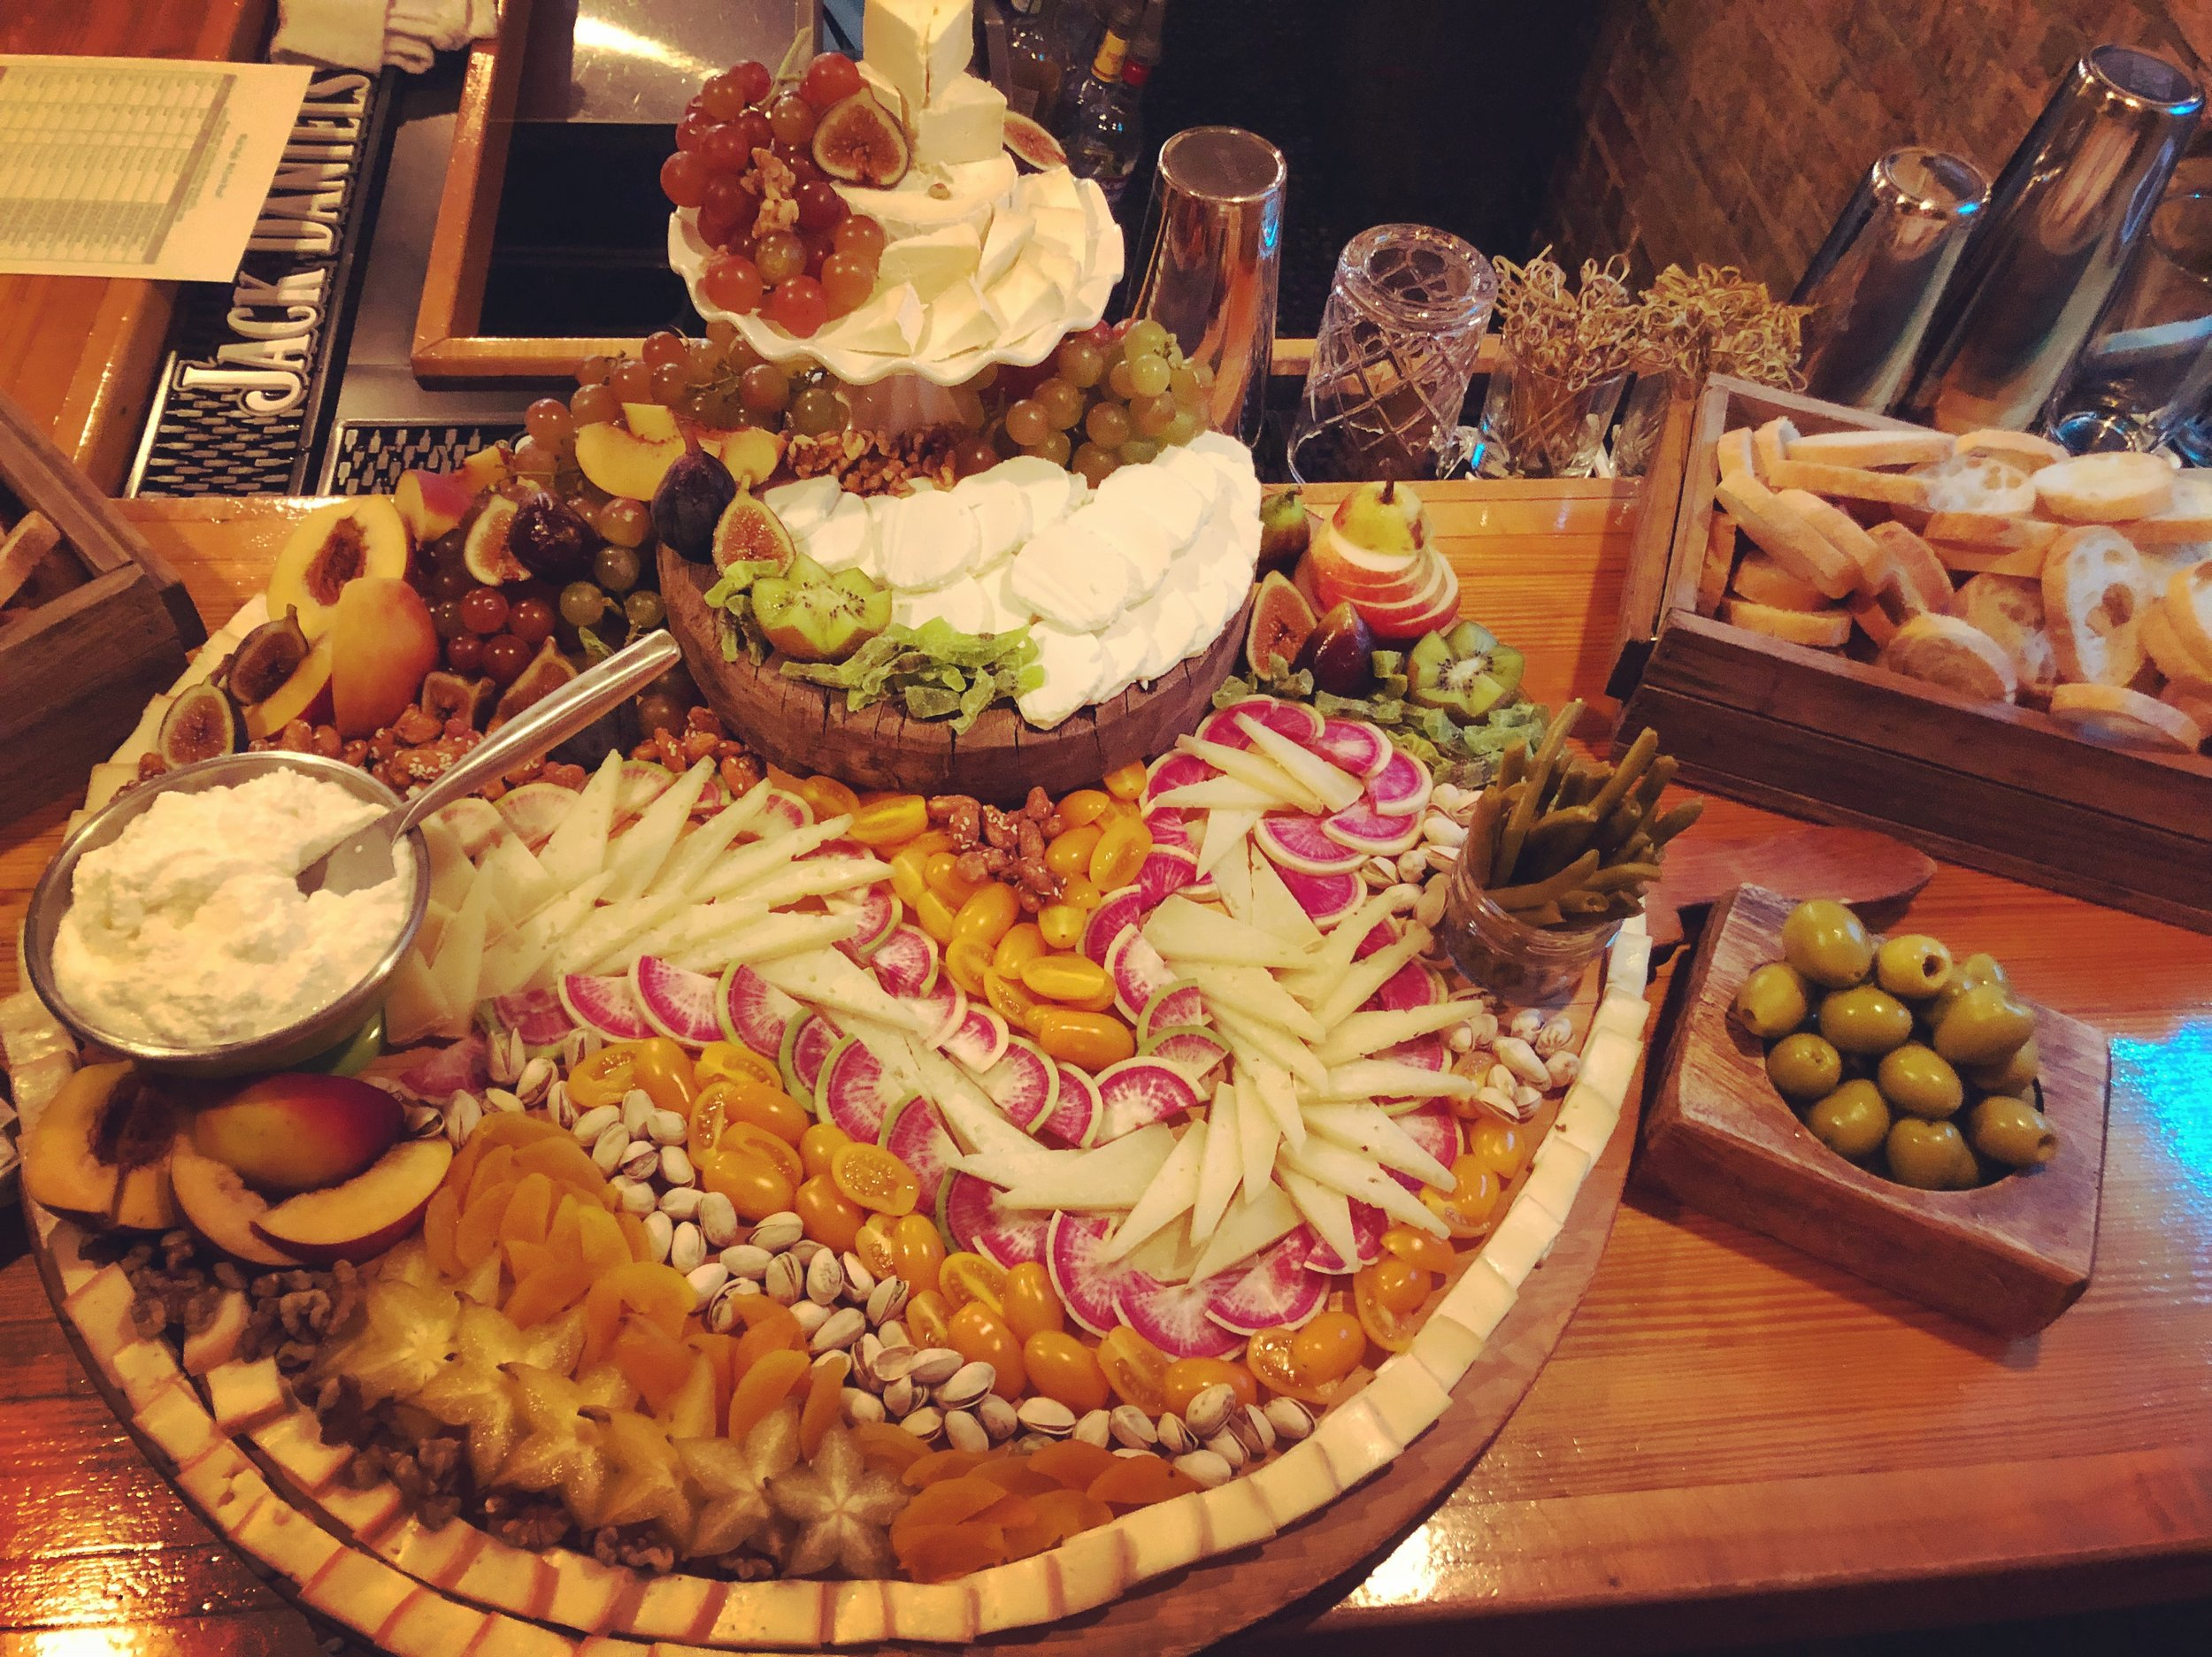 04.25.18 Rose and Cheese board.JPG